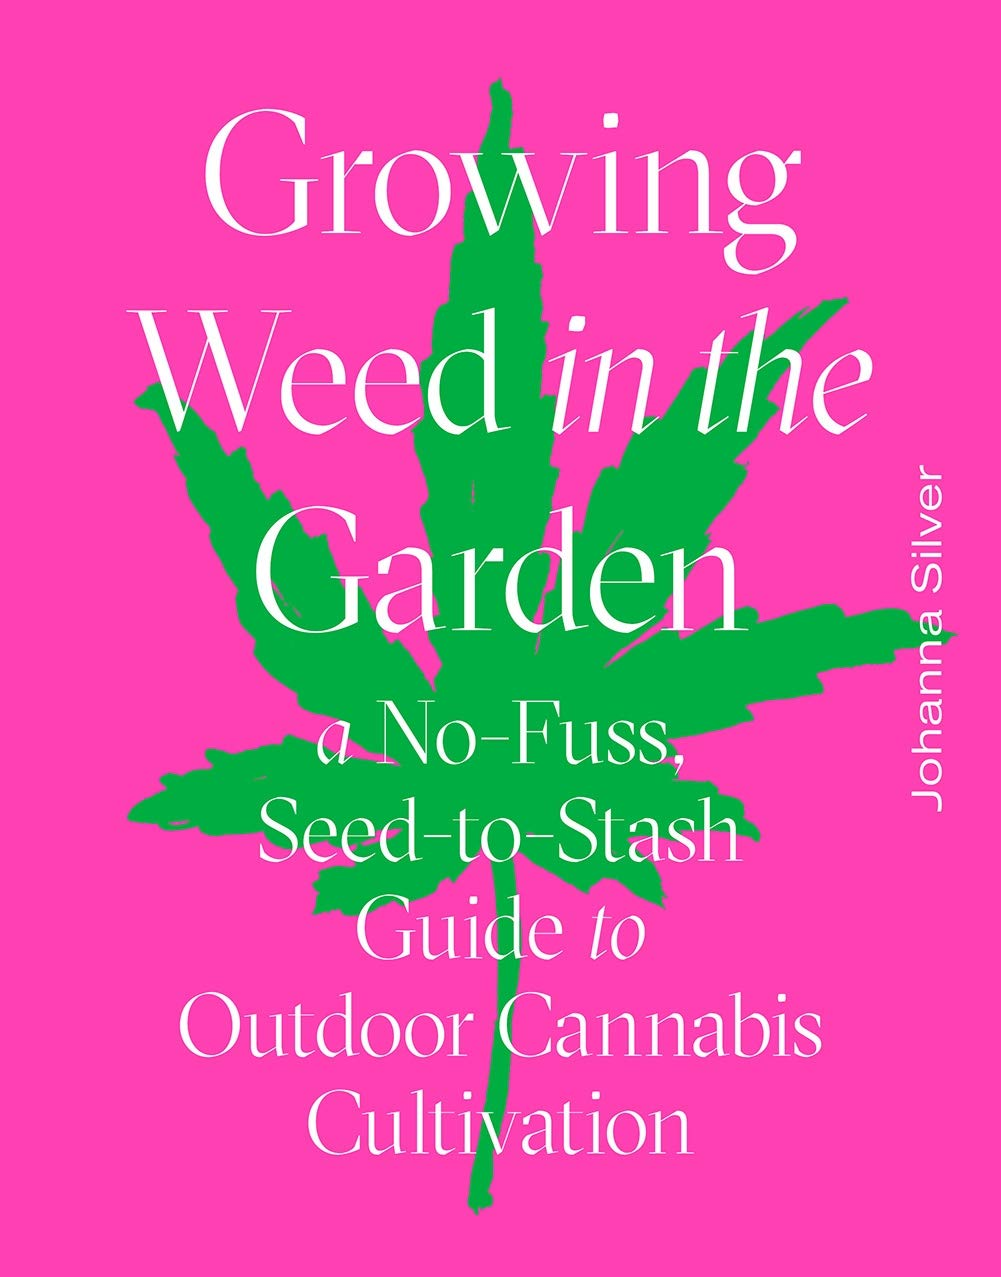 FREE AUTHOR EVENT! Sun. June 28 • Johanna Montenegro • Growing Weed in the Garden: A No-Fuss, Seed-to-Stash Guide to Outdoor Cannabis Cultivation • 3:00 P.M.